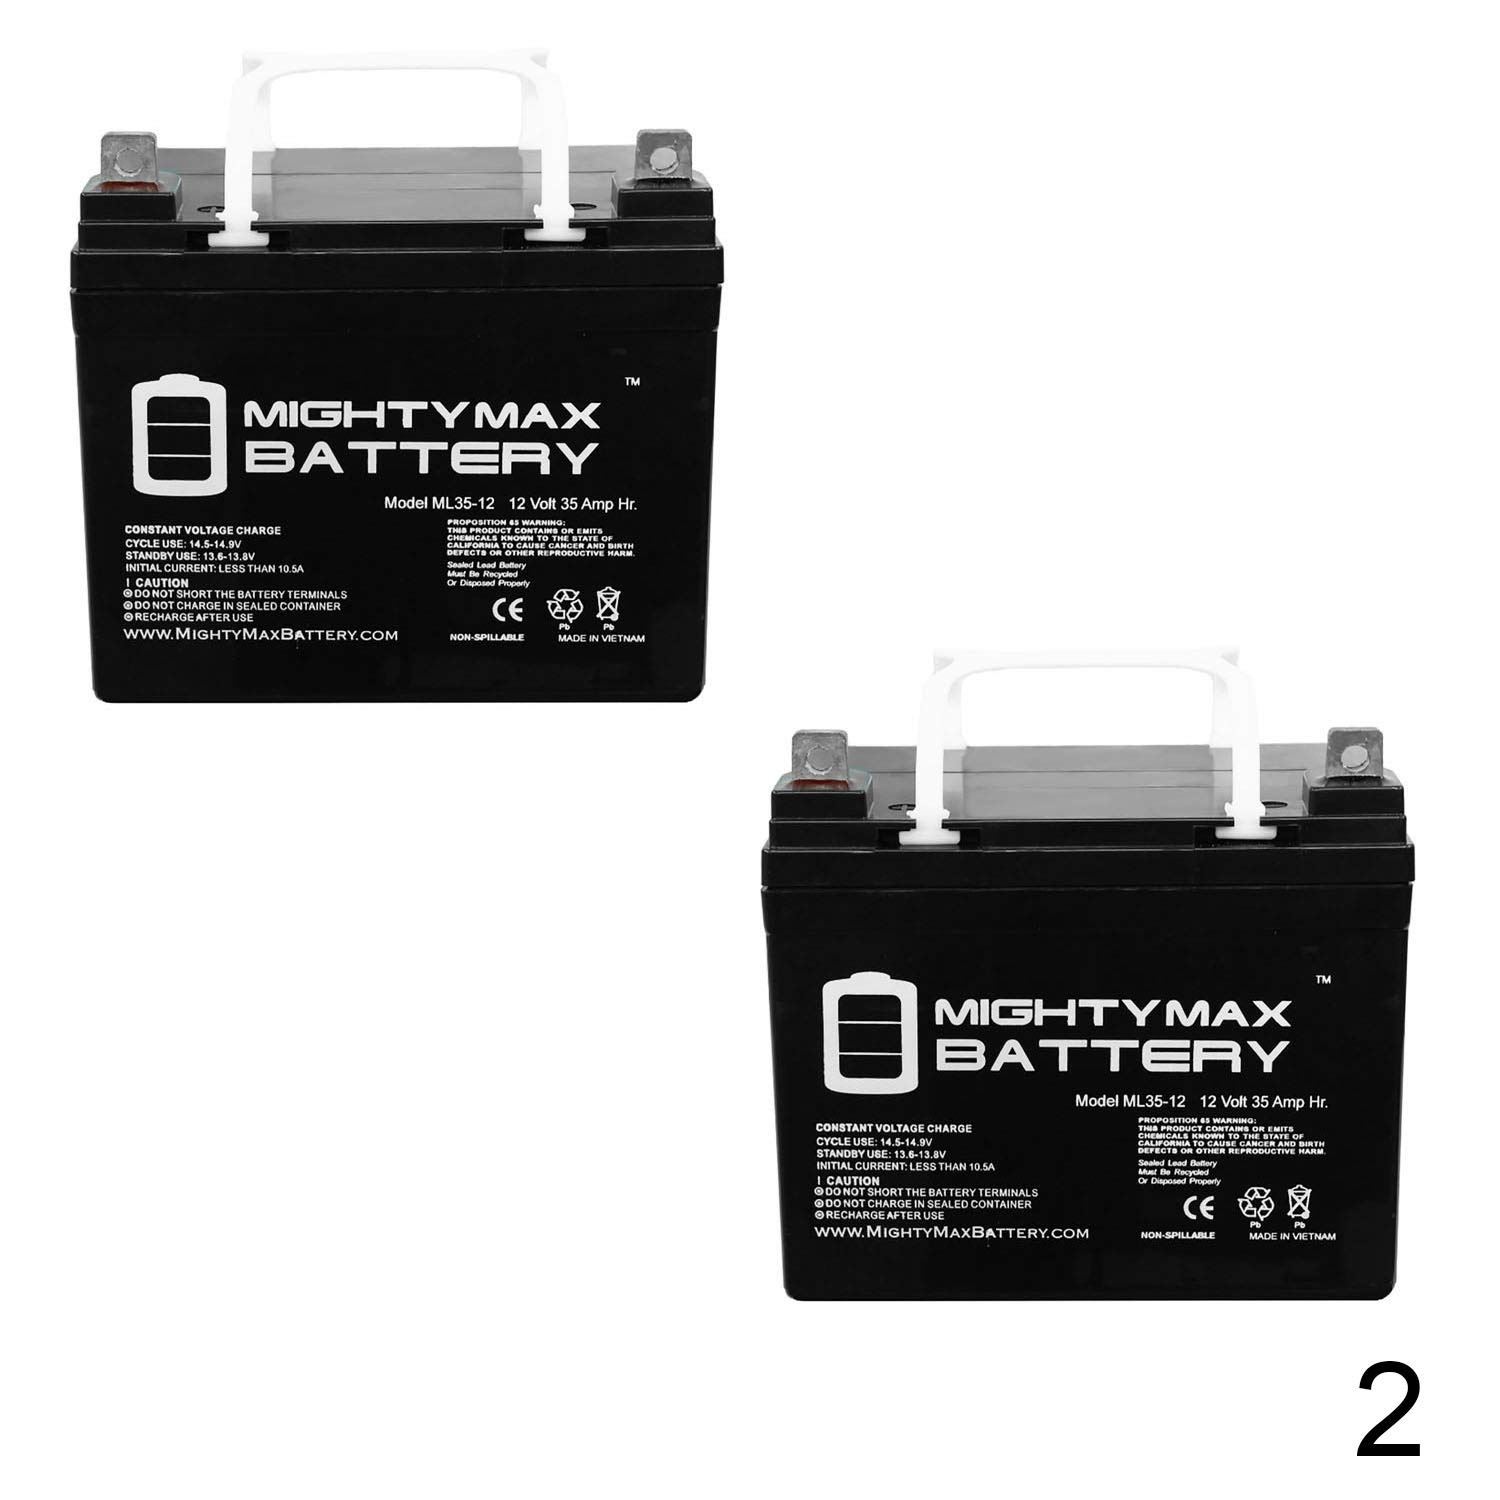 Mighty Max Battery ML35-12 - 12V 35AH U1 Wheelchair Scooter Battery Replaces 31Ah MX-12310-2 Pack Brand Product by Mighty Max Battery